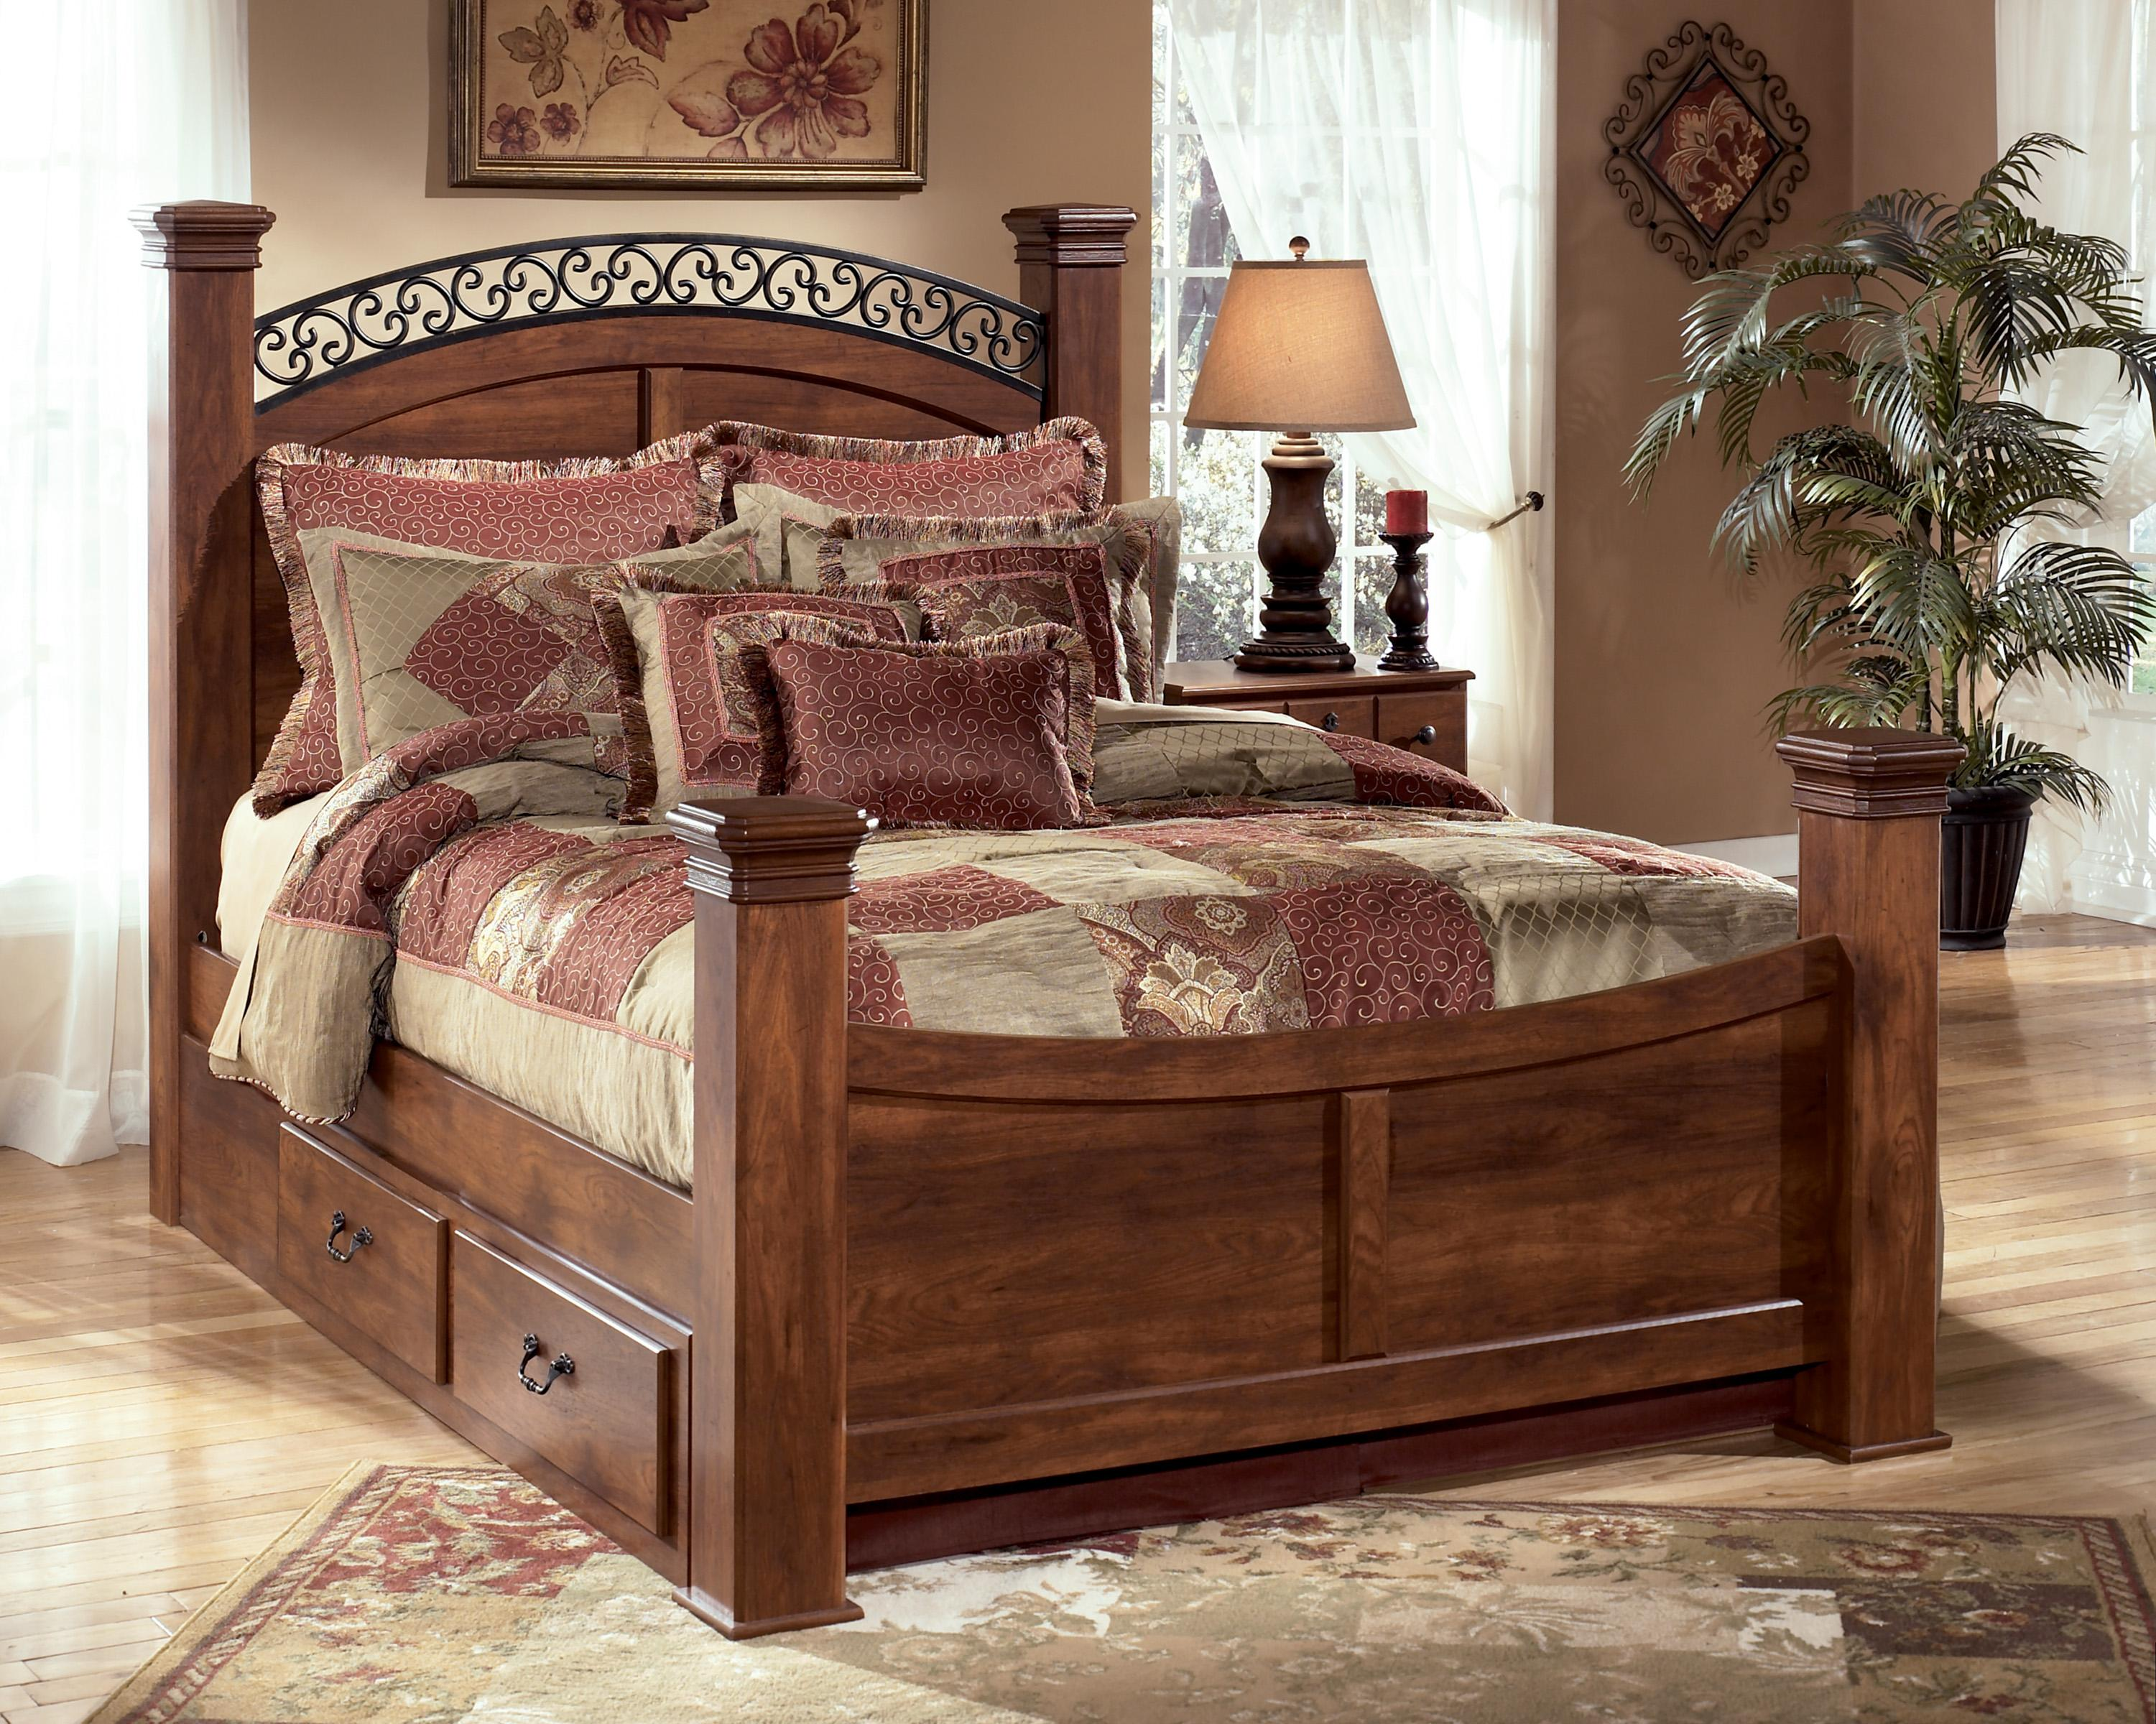 King Poster Bed With Underbed Storage By Signature Design